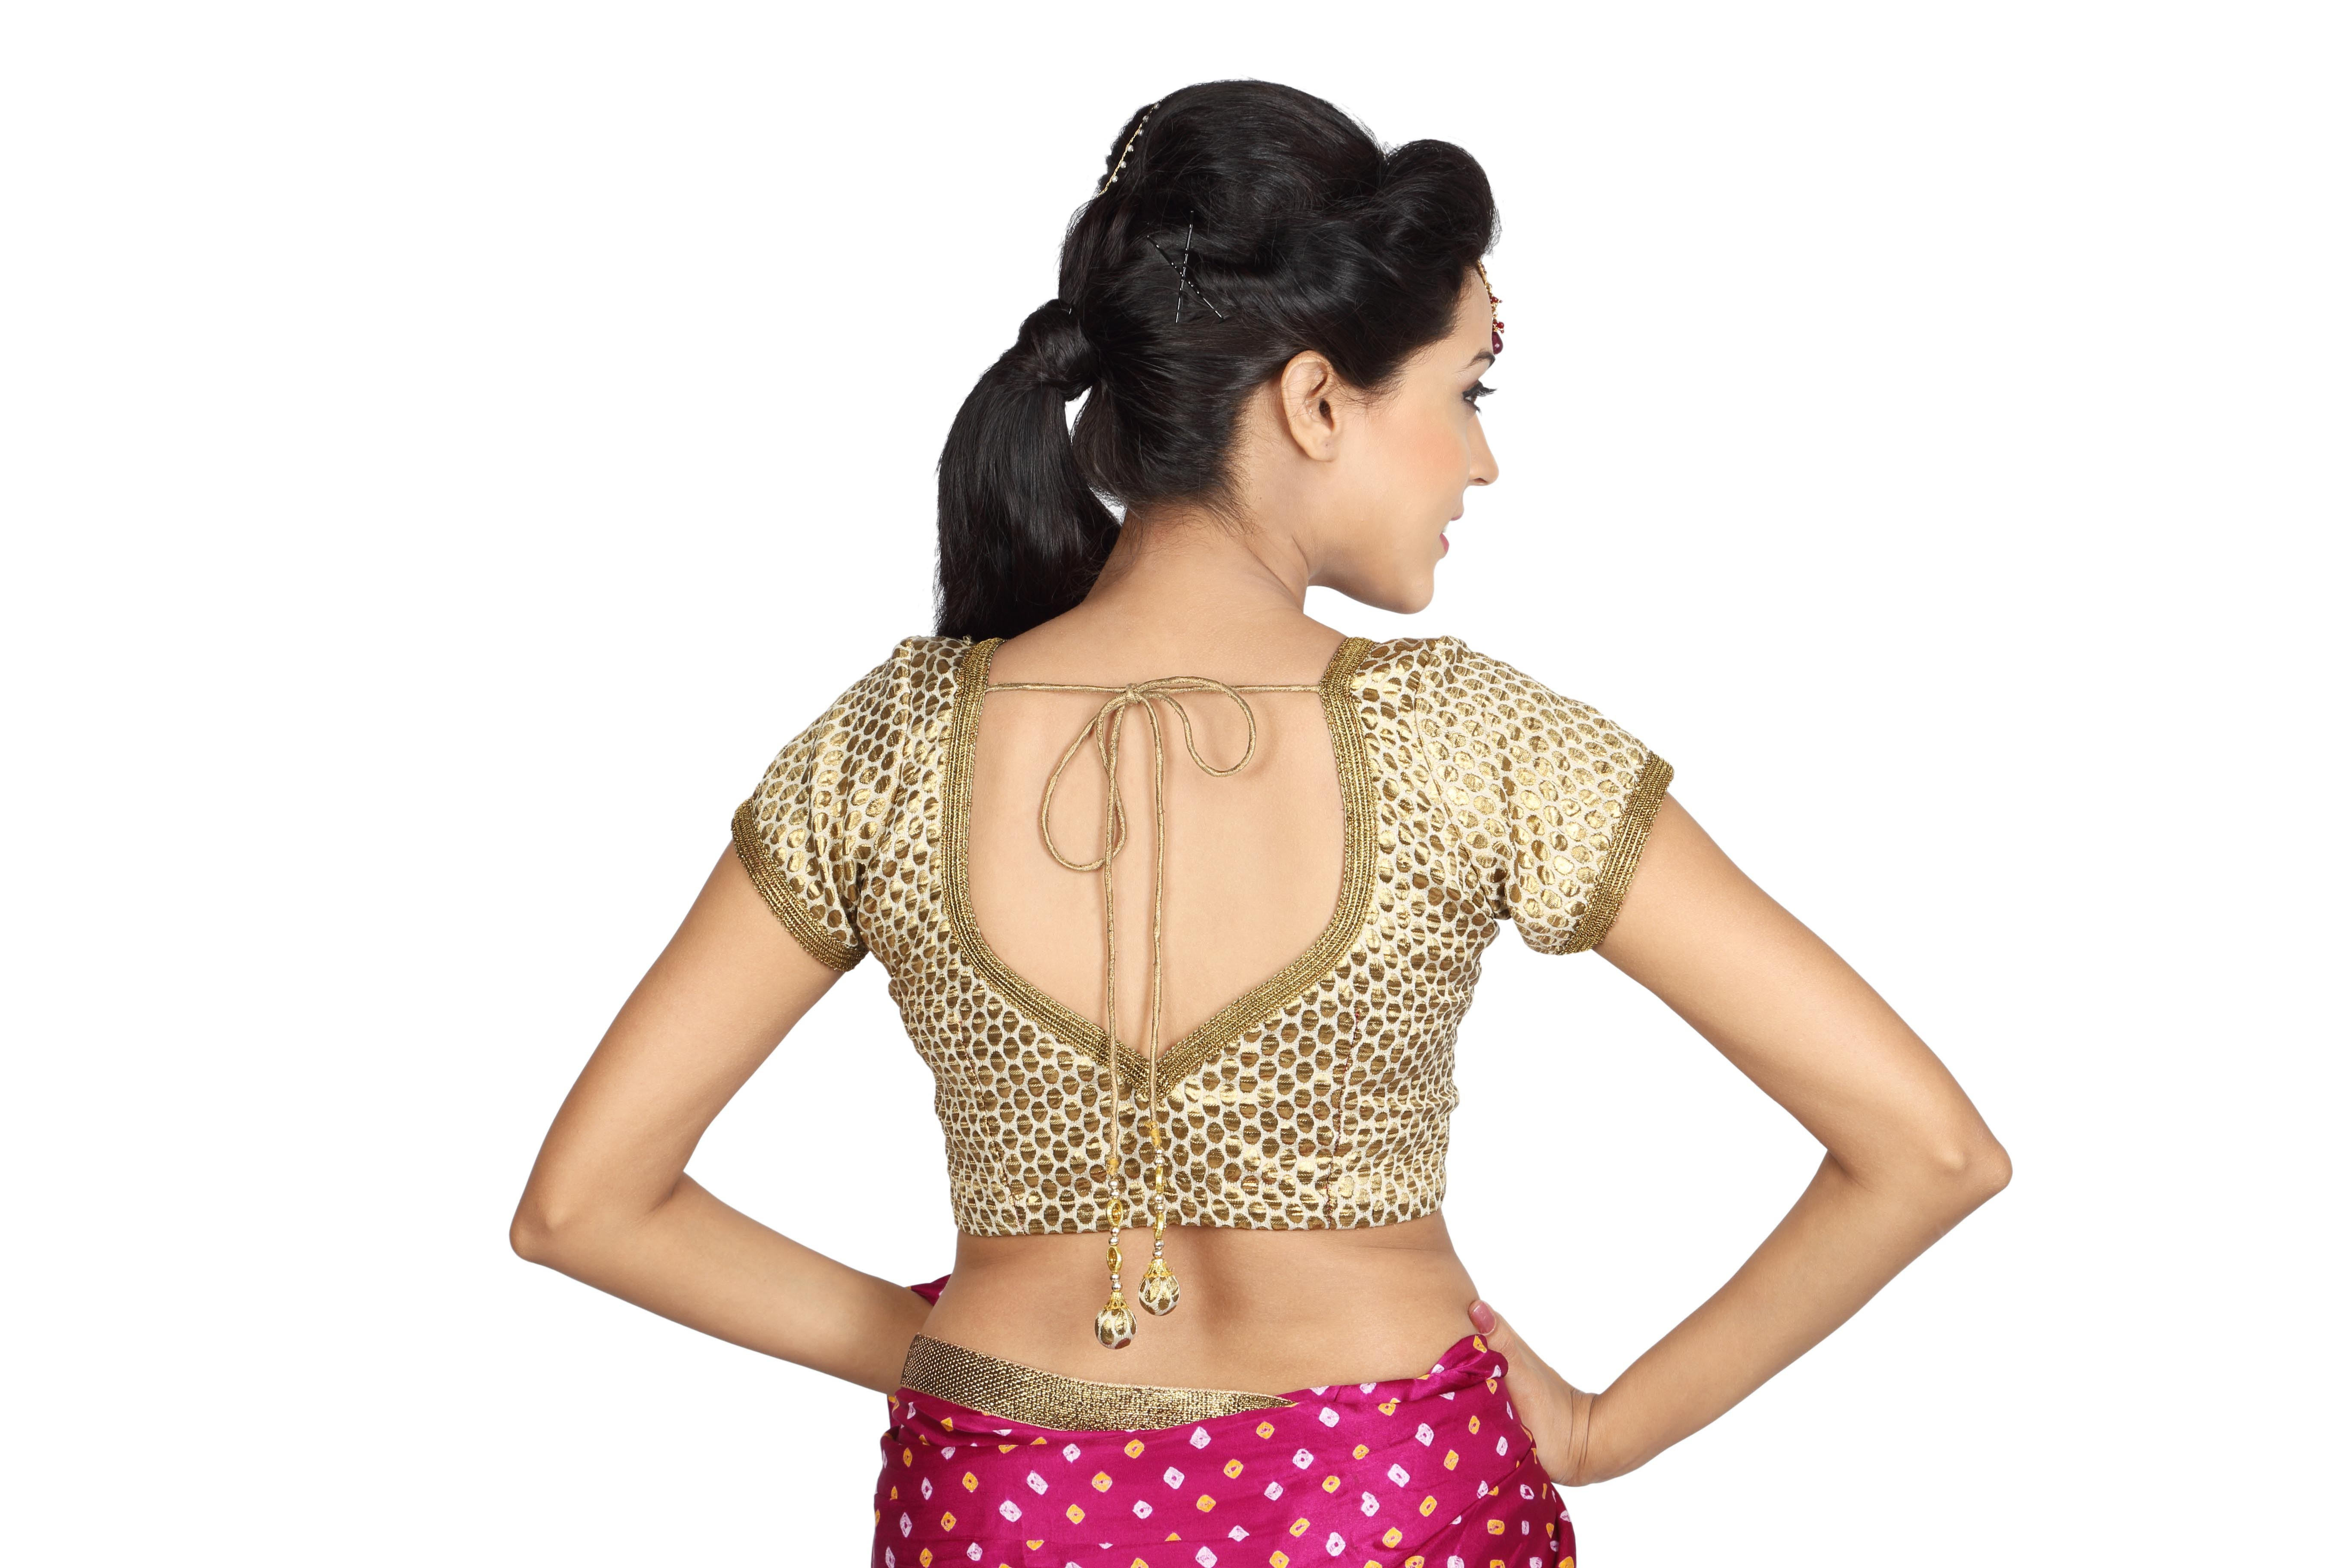 Buy cheap blouses online at gothicphotos.ga, we offer a great selection of women's blouses for different occasions.